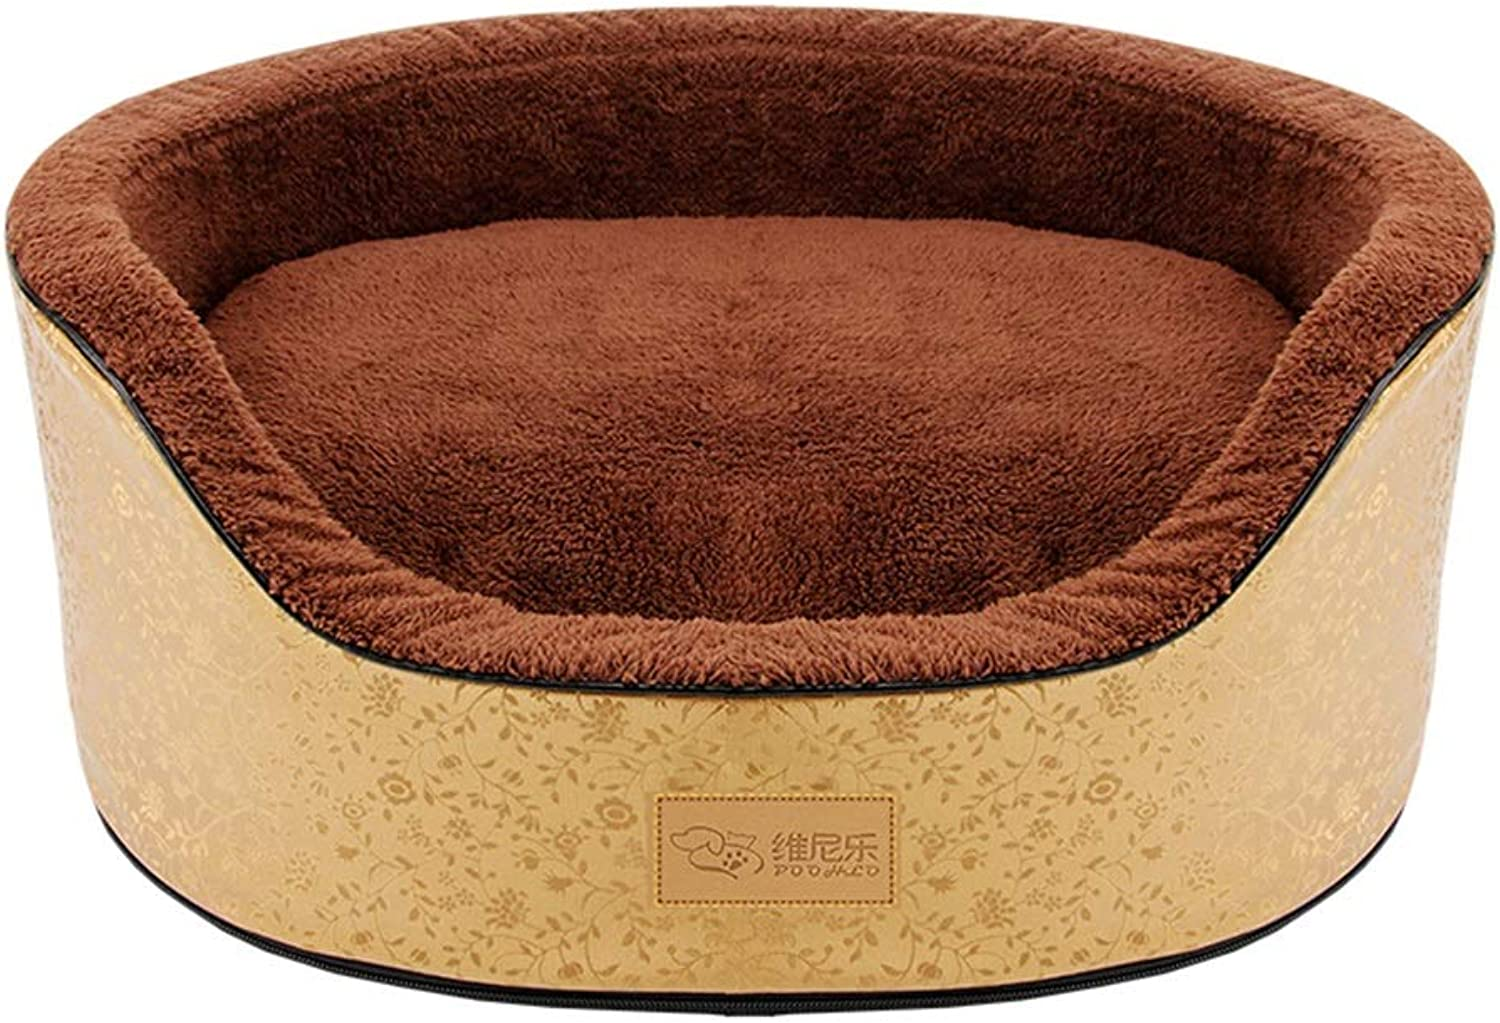 Hxyan Pet Bed Small Medium Dogs Can Be Removed and Washed Dog Bed Cat Bed Pet Pad Sponge Four Seasons Universal (Diameter  49cm)